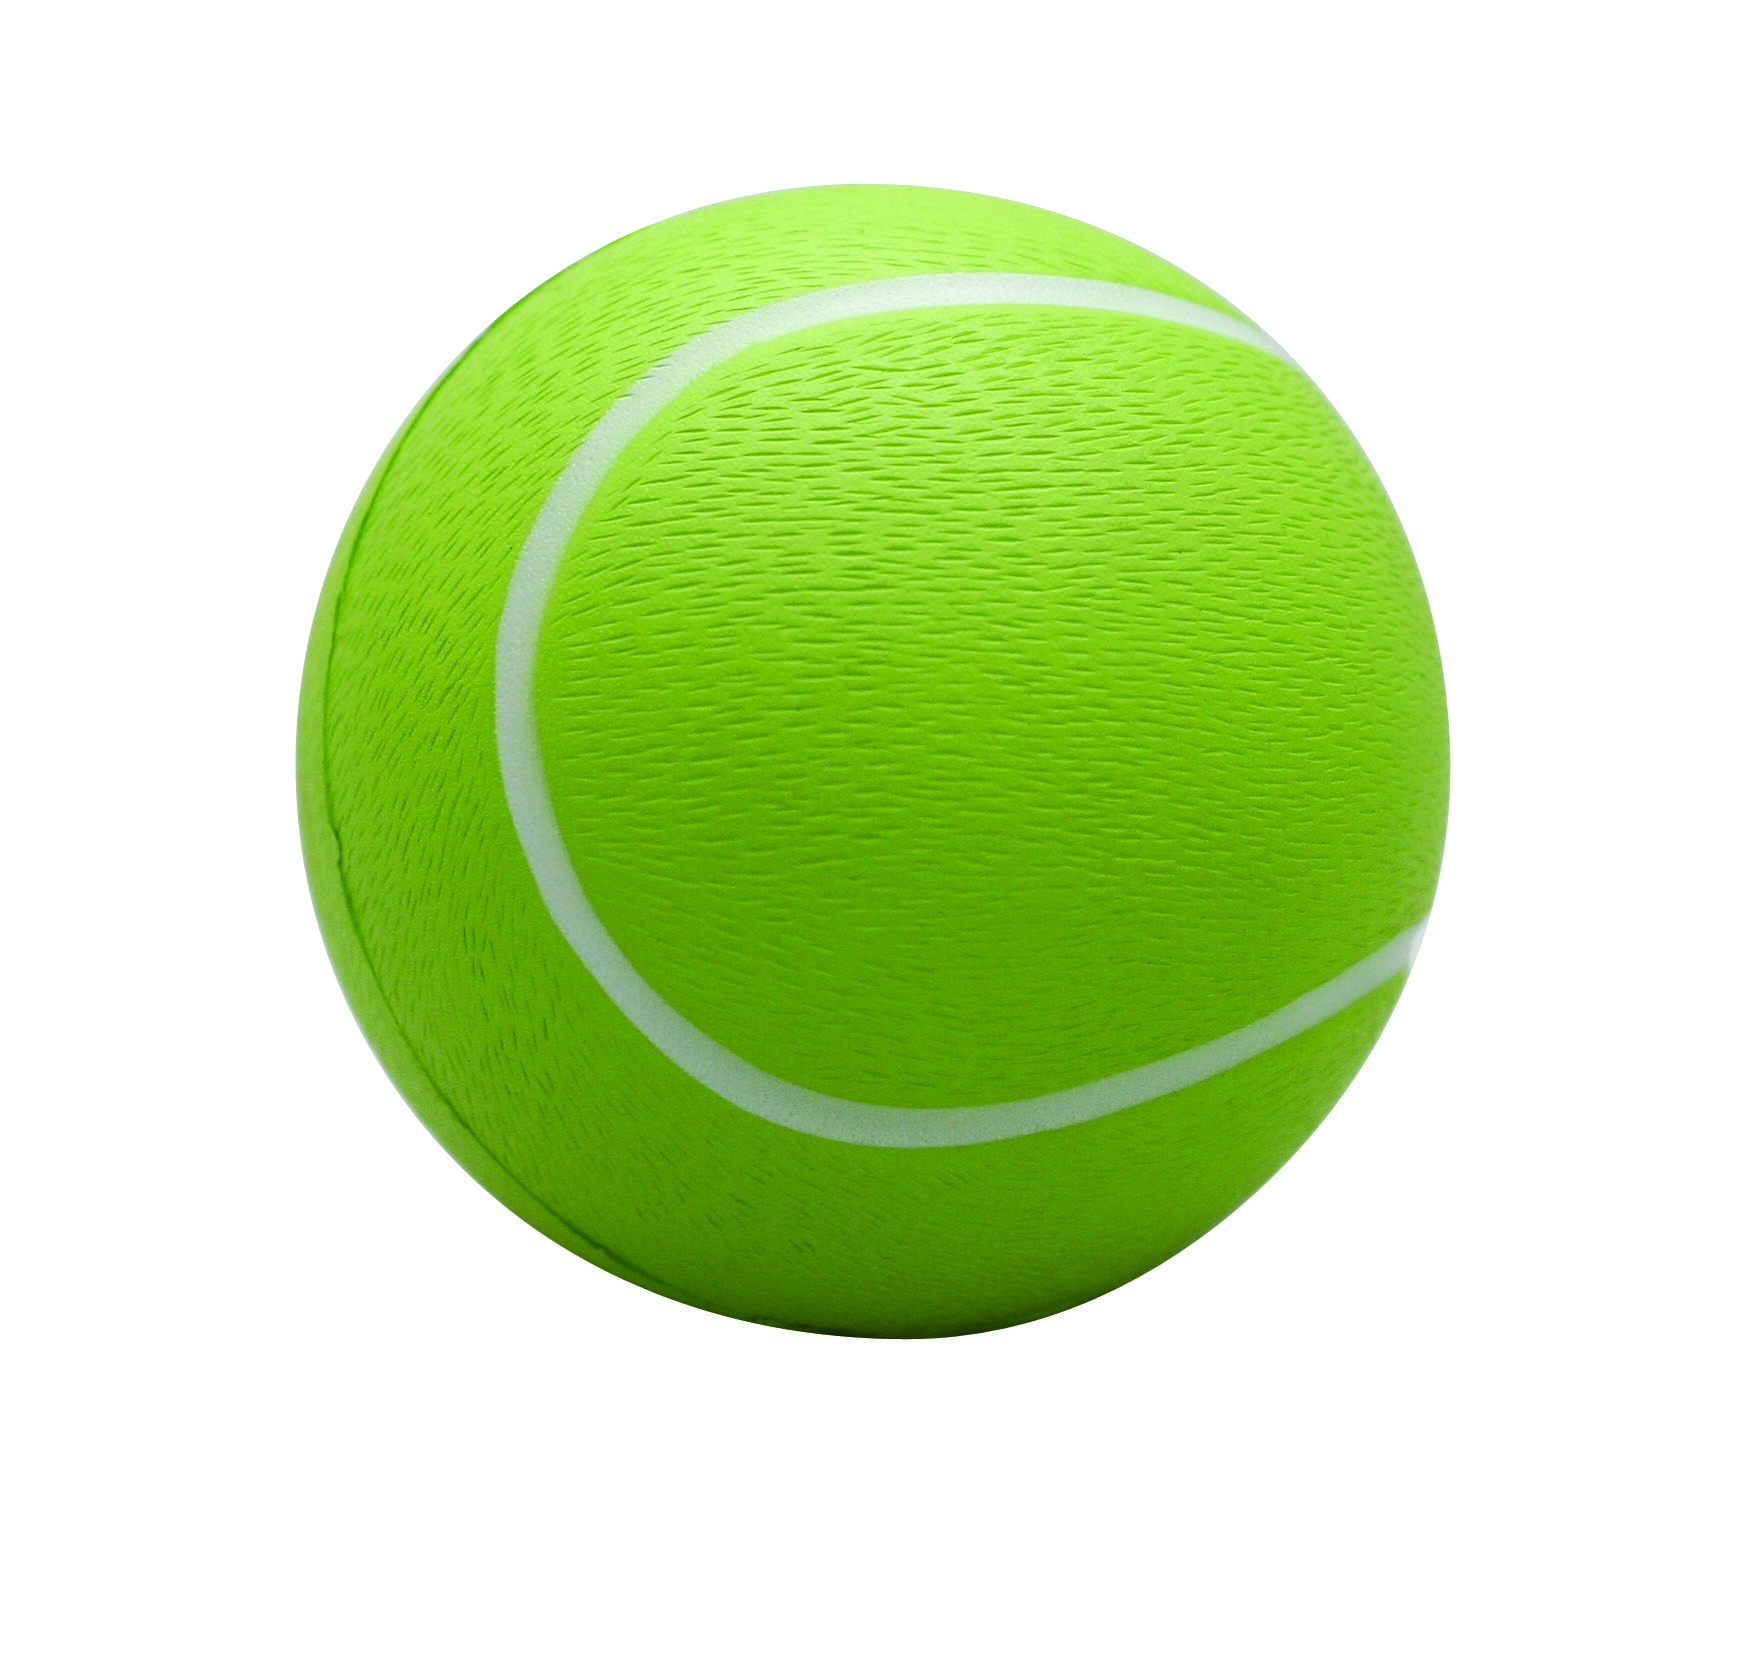 Tennis Ball Clipart